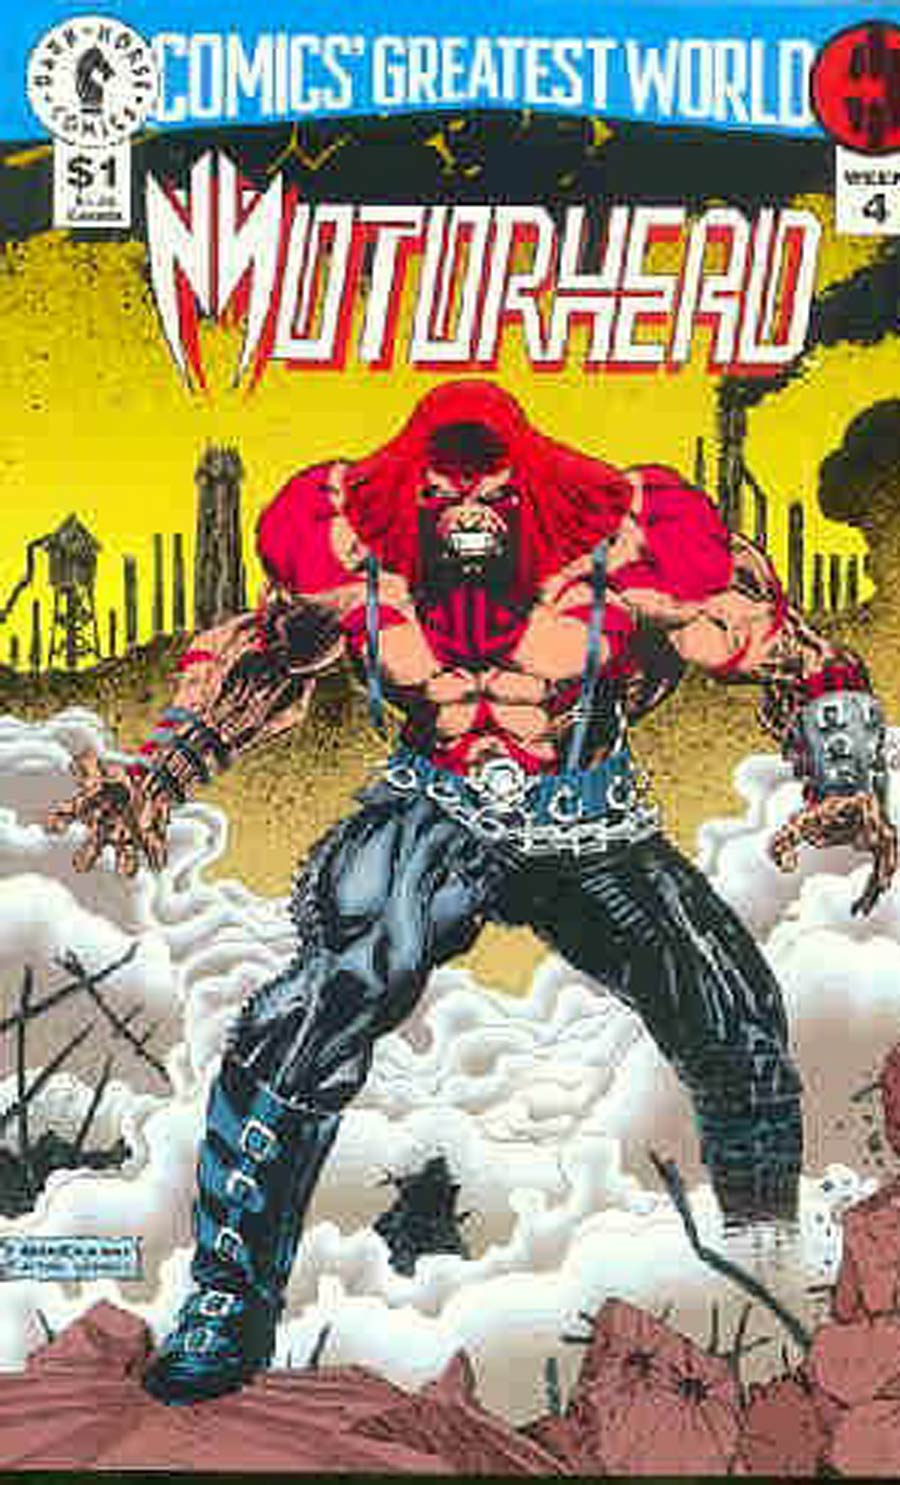 Comics Greatest World Steel Harbor Week #4 Motorhead